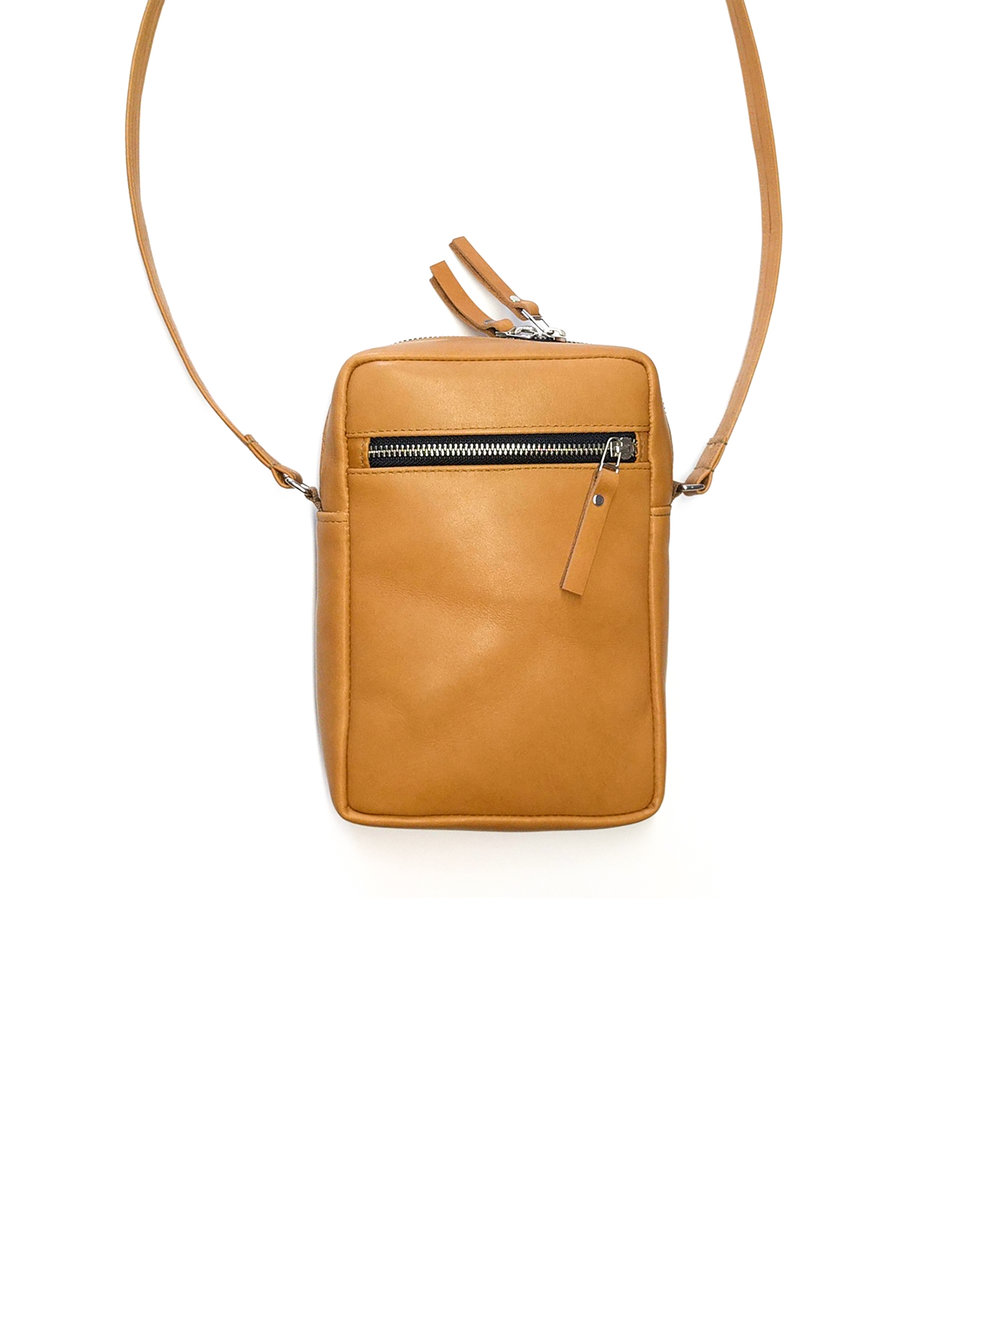 Leather crossbody bag - 140.00$